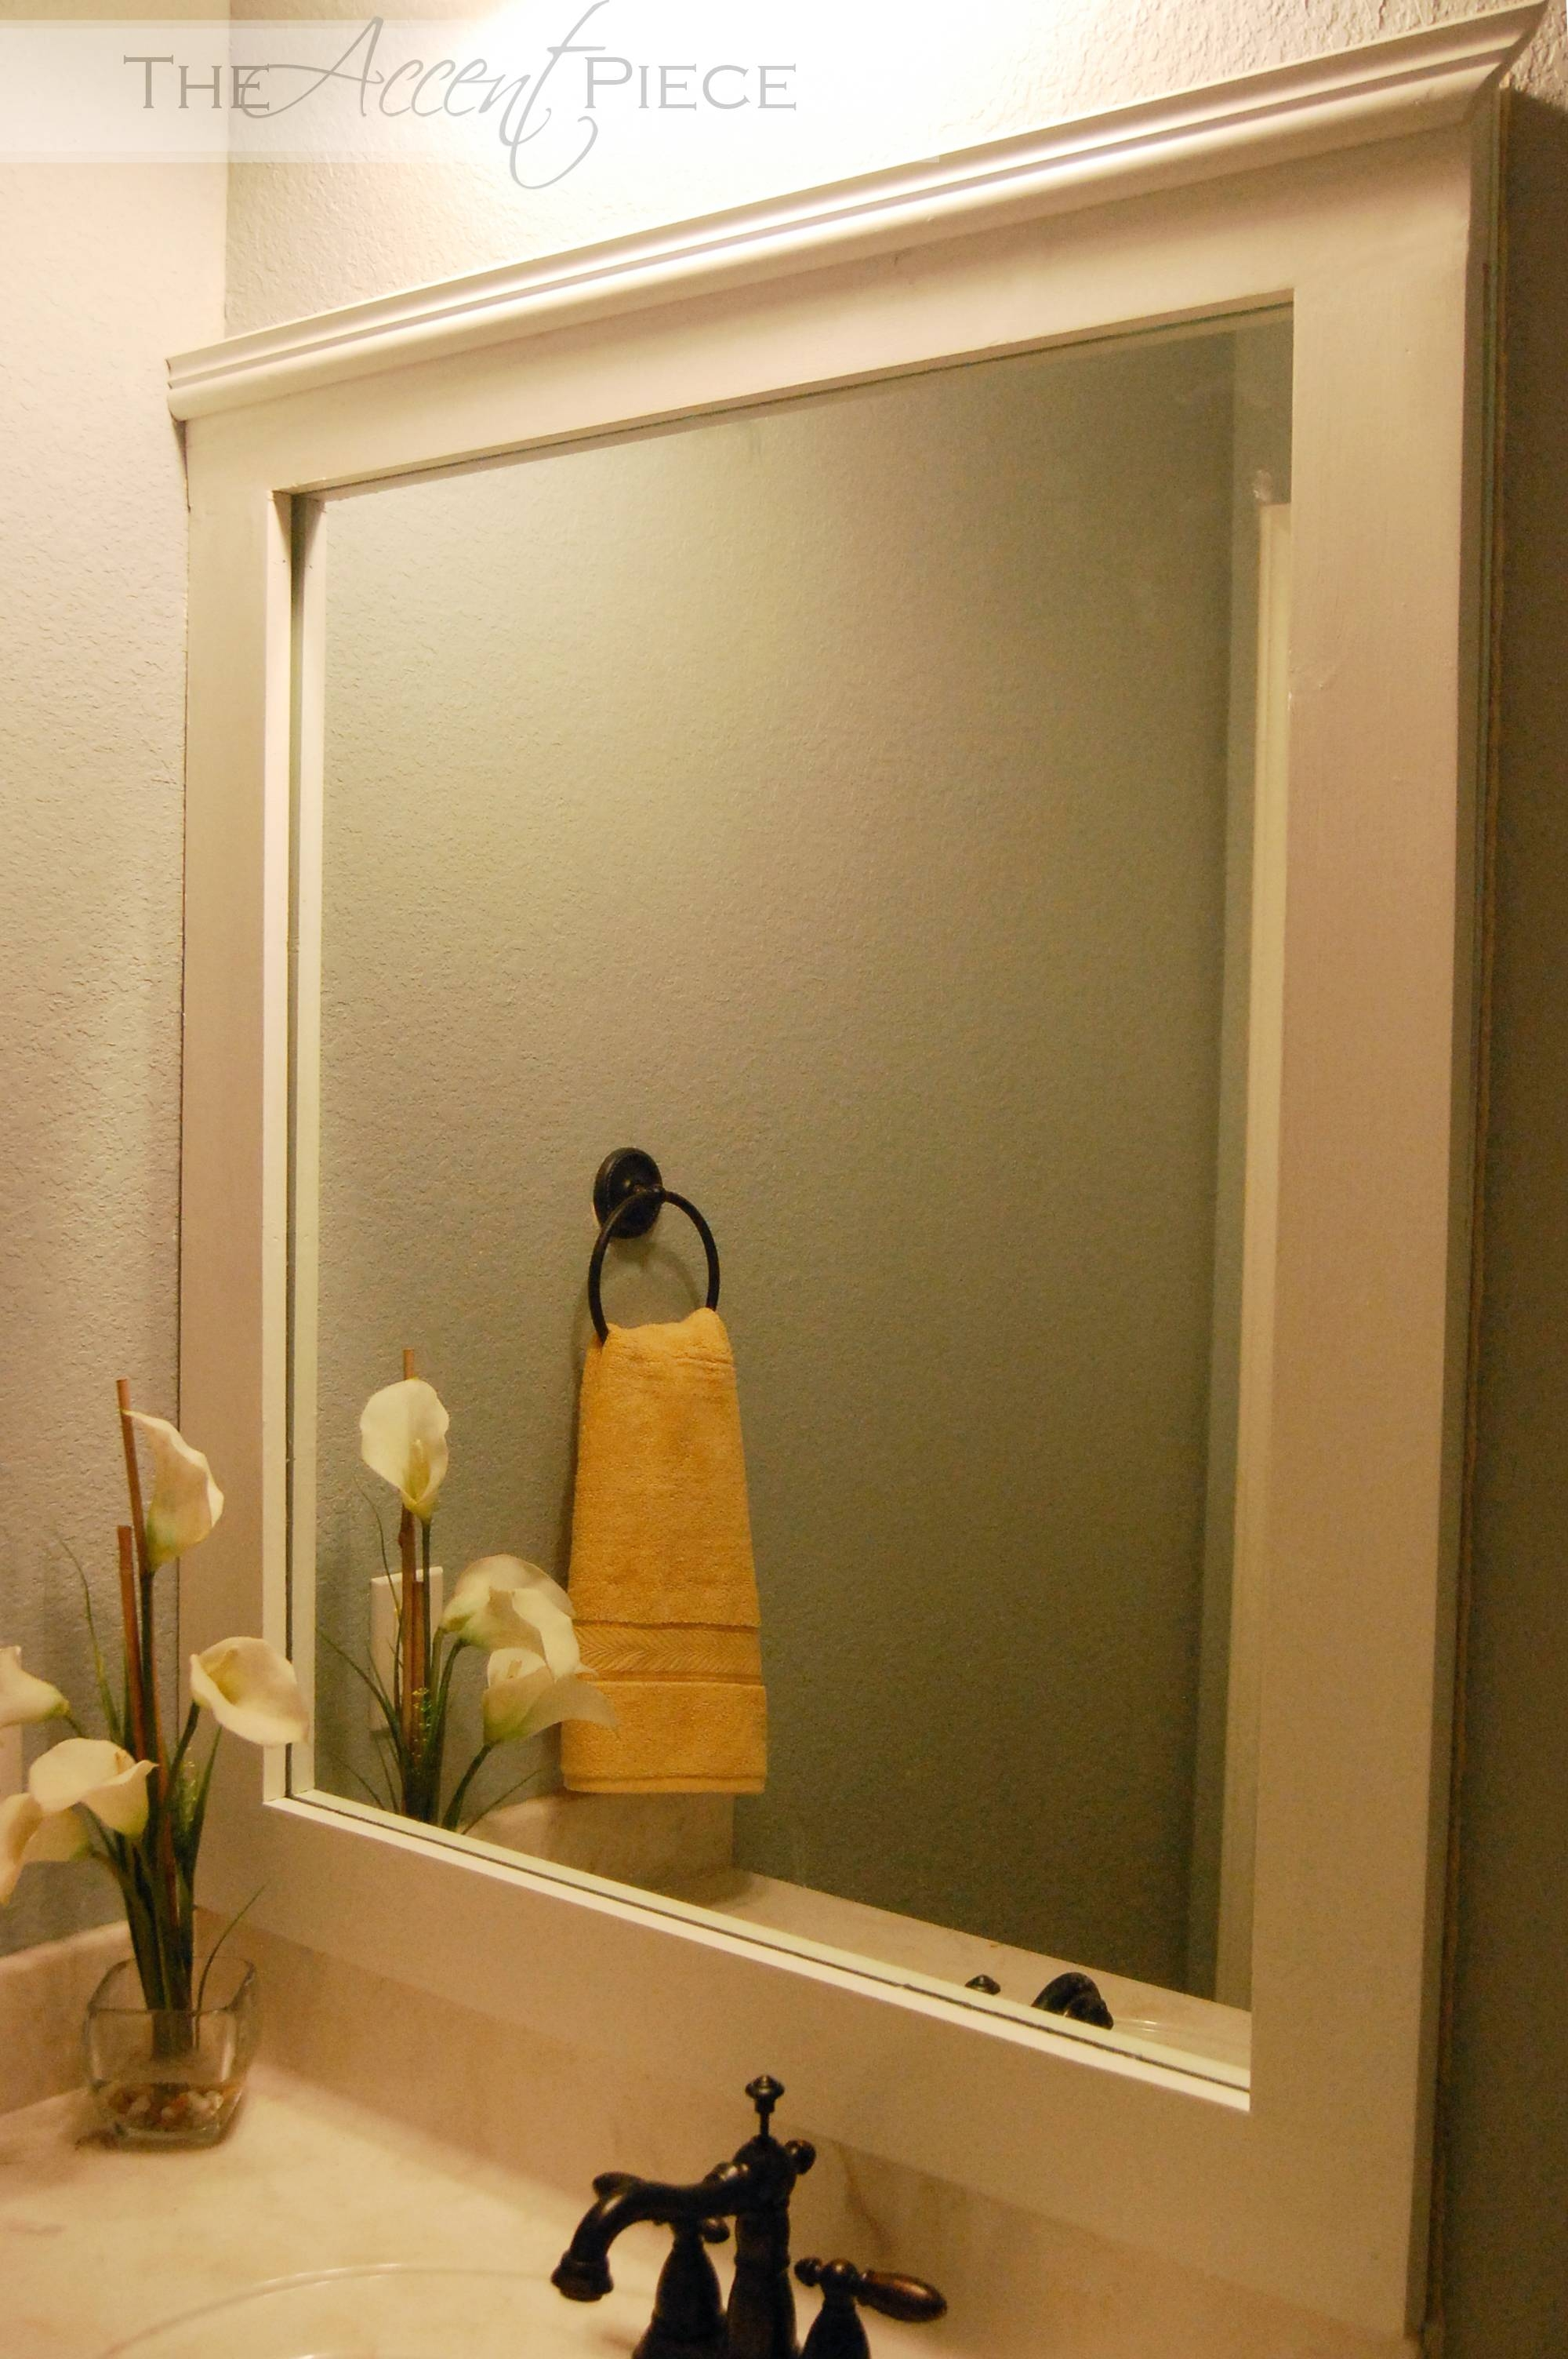 Bathroom Cabinets : Vanity Wall Mirror Mirror Trim Large Black within Large Black Mirrors (Image 6 of 15)